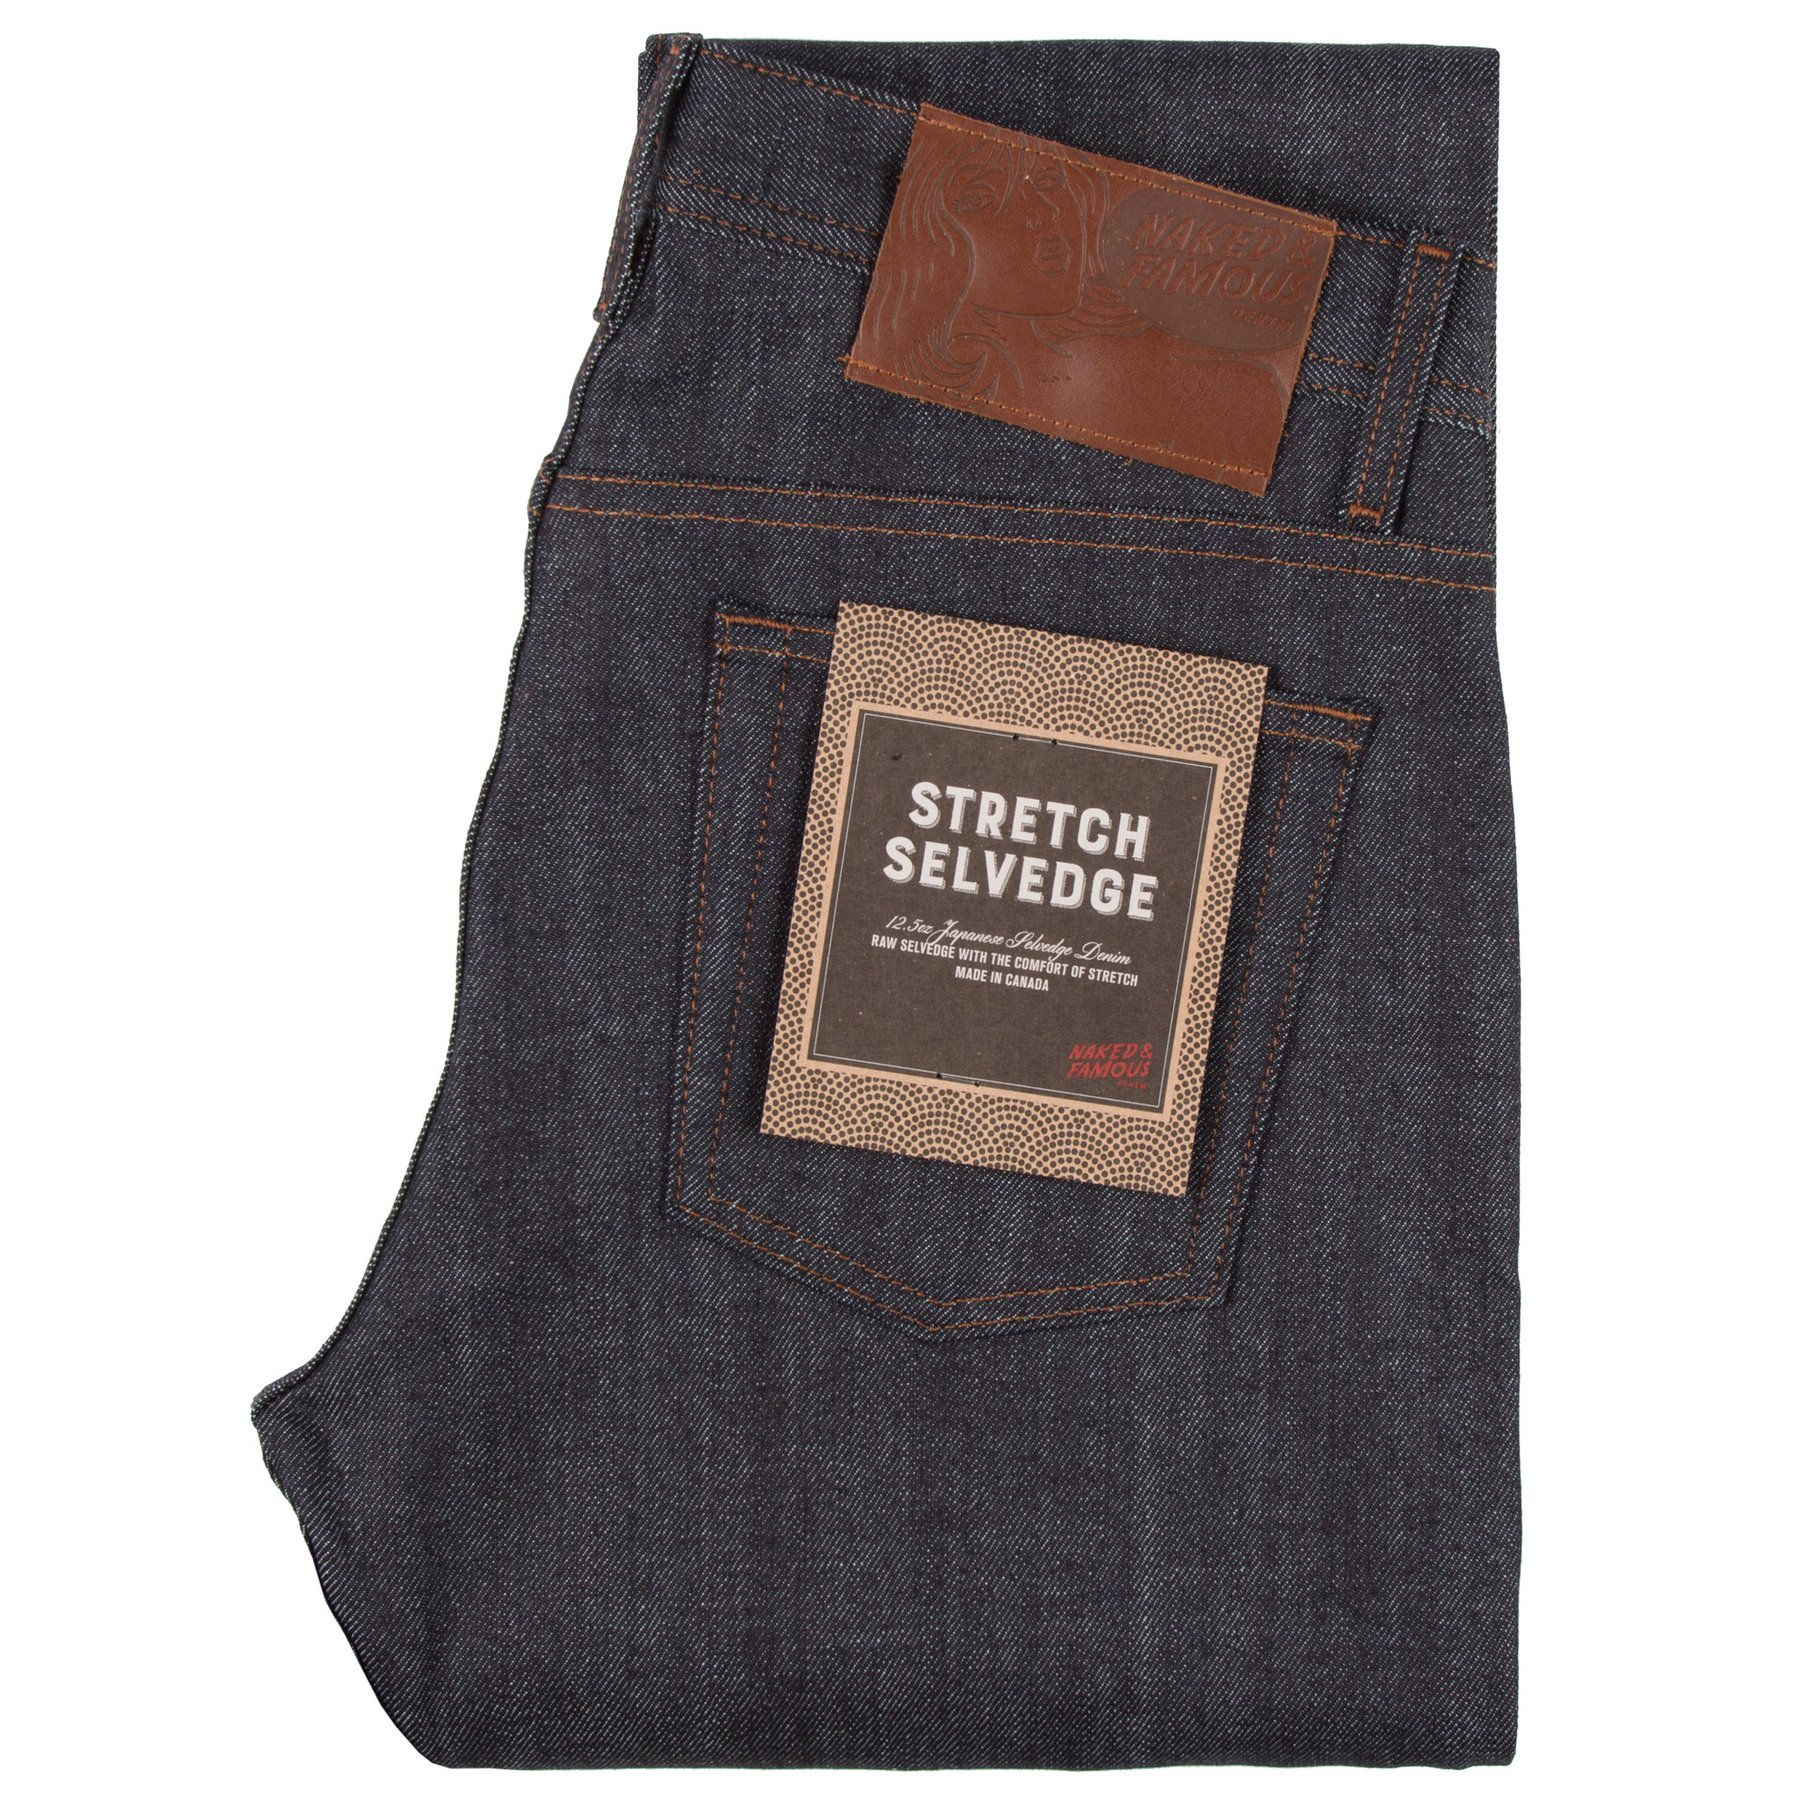 stretch selvedge - Super Guy / Weird Guy / Easy Guy